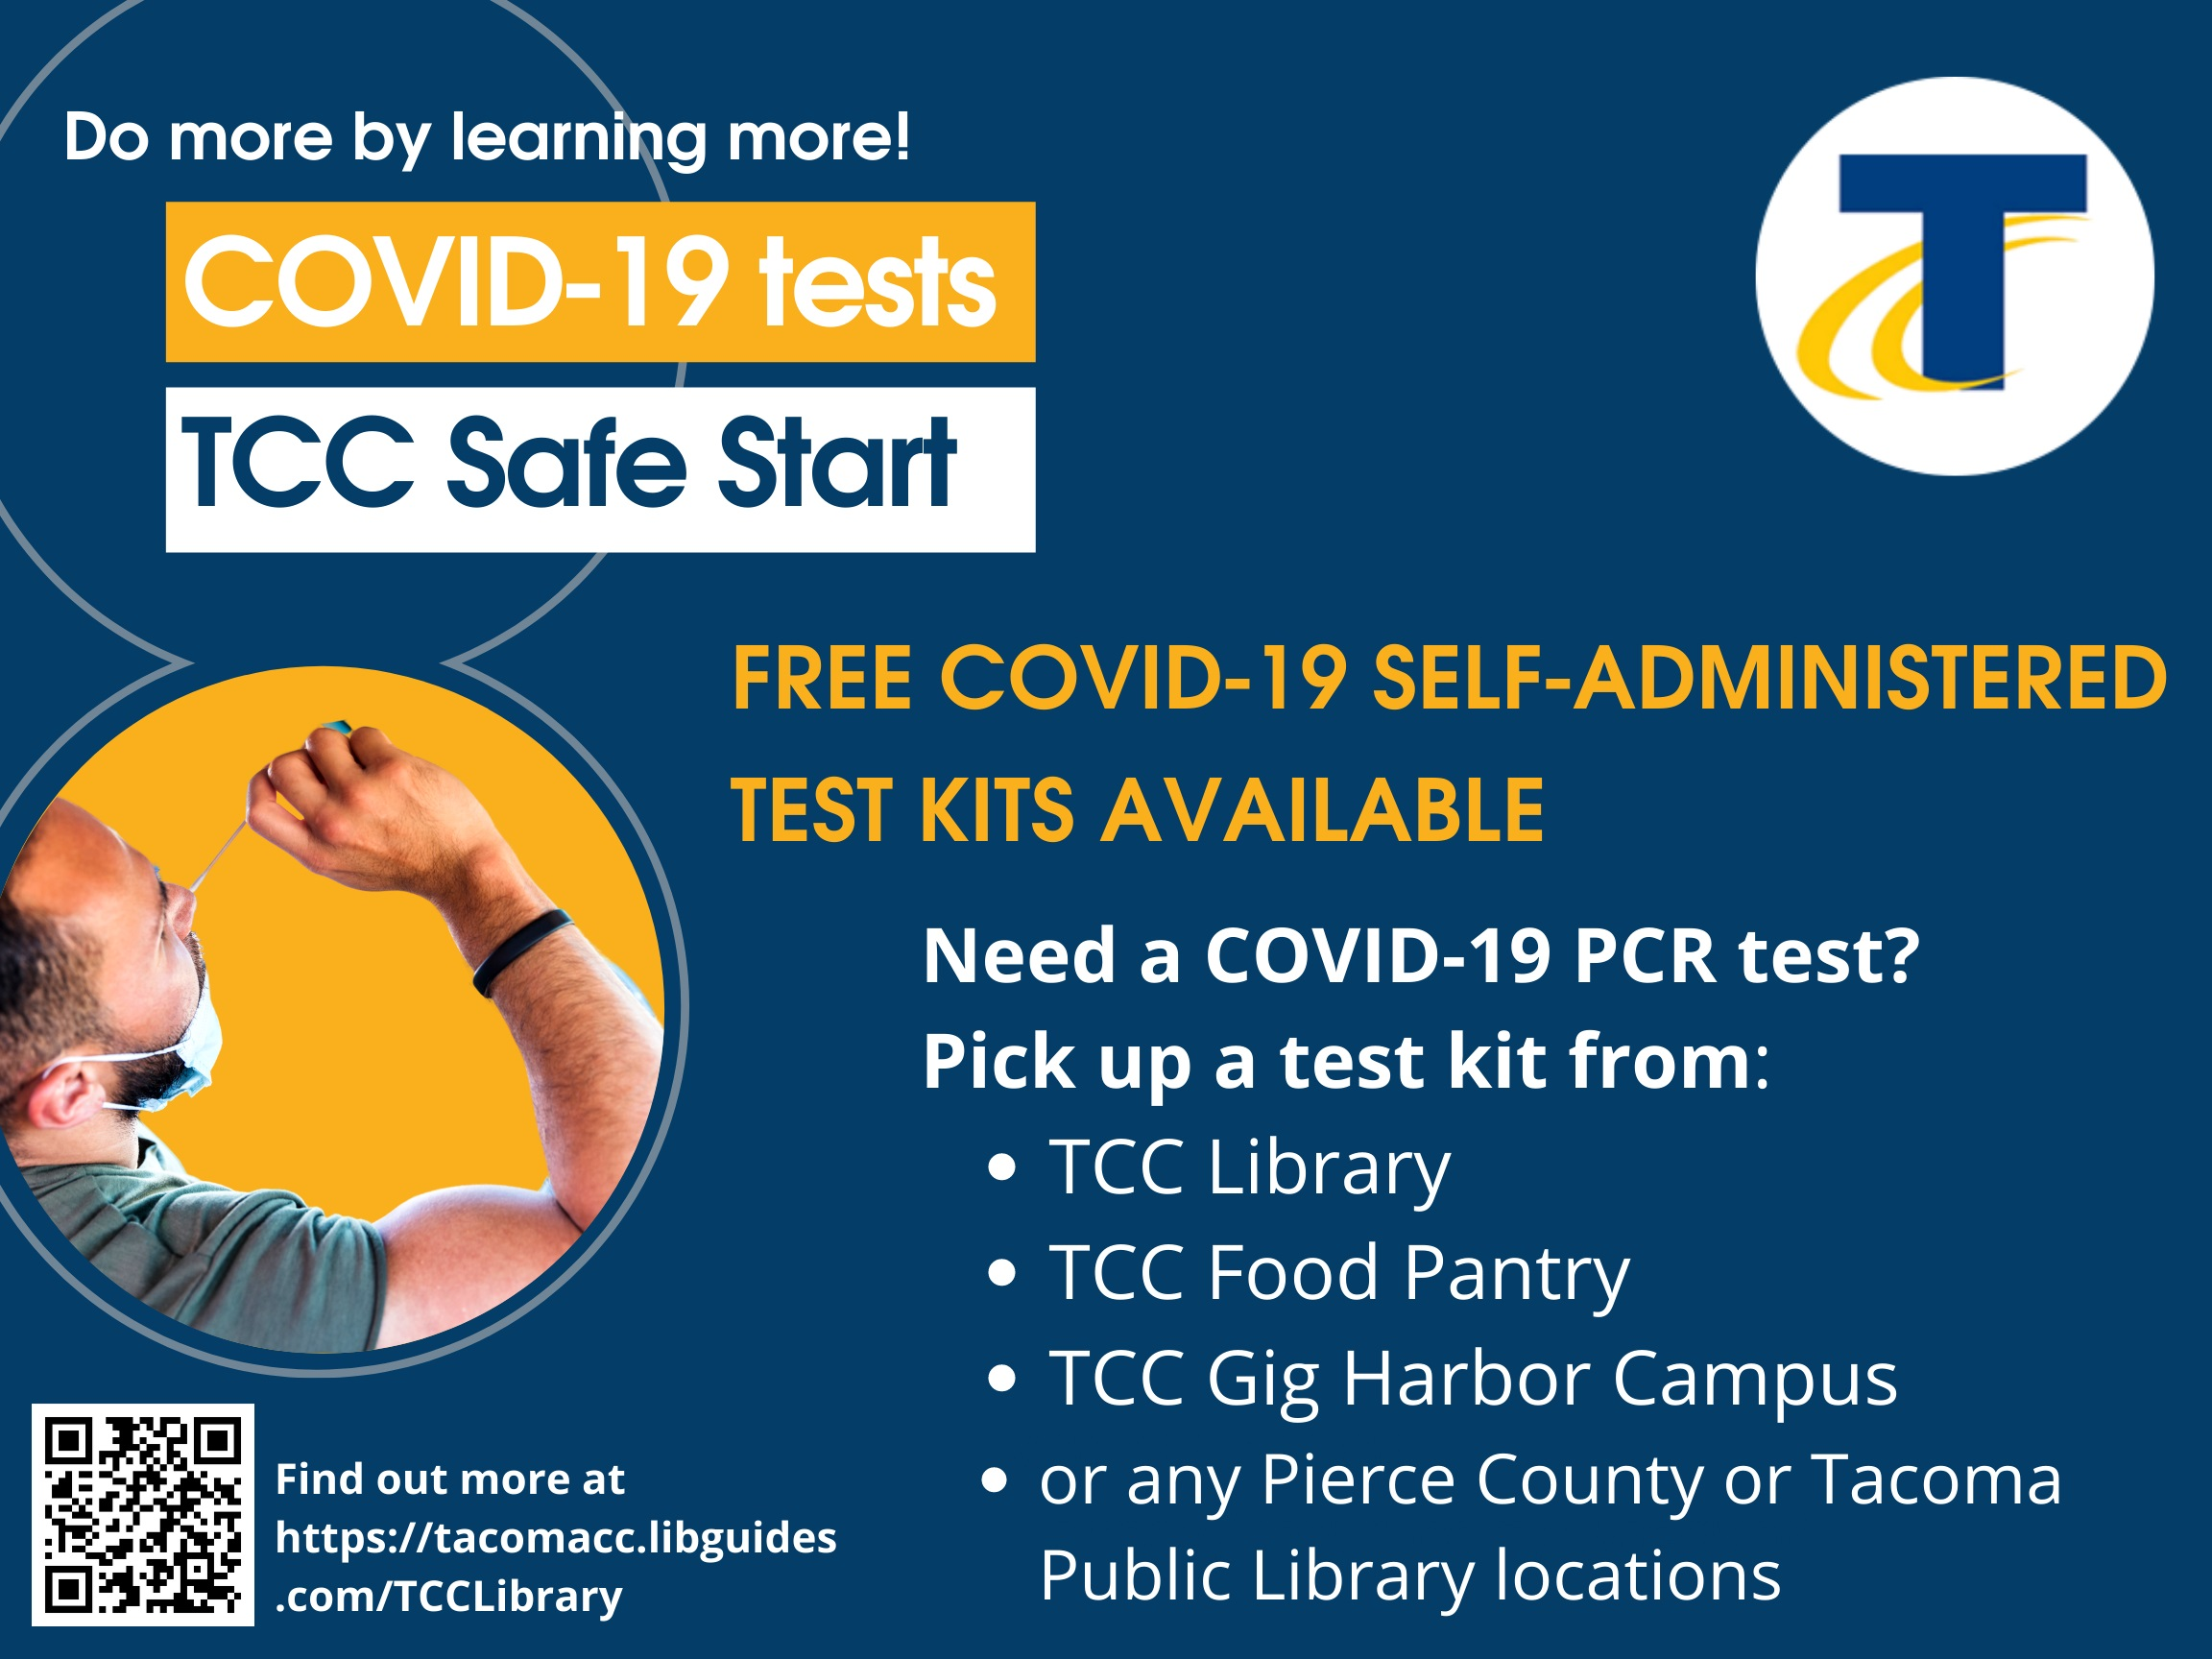 Do you need to be tested for COVID-19? You can get a free self-administered PCR test kit from the TCC Library, the TCC Food Pantry, TCC Gig Harbor Campus, or any public library location in Tacoma or Pierce County. Read more below, or call 253-566-5087 to find out more.